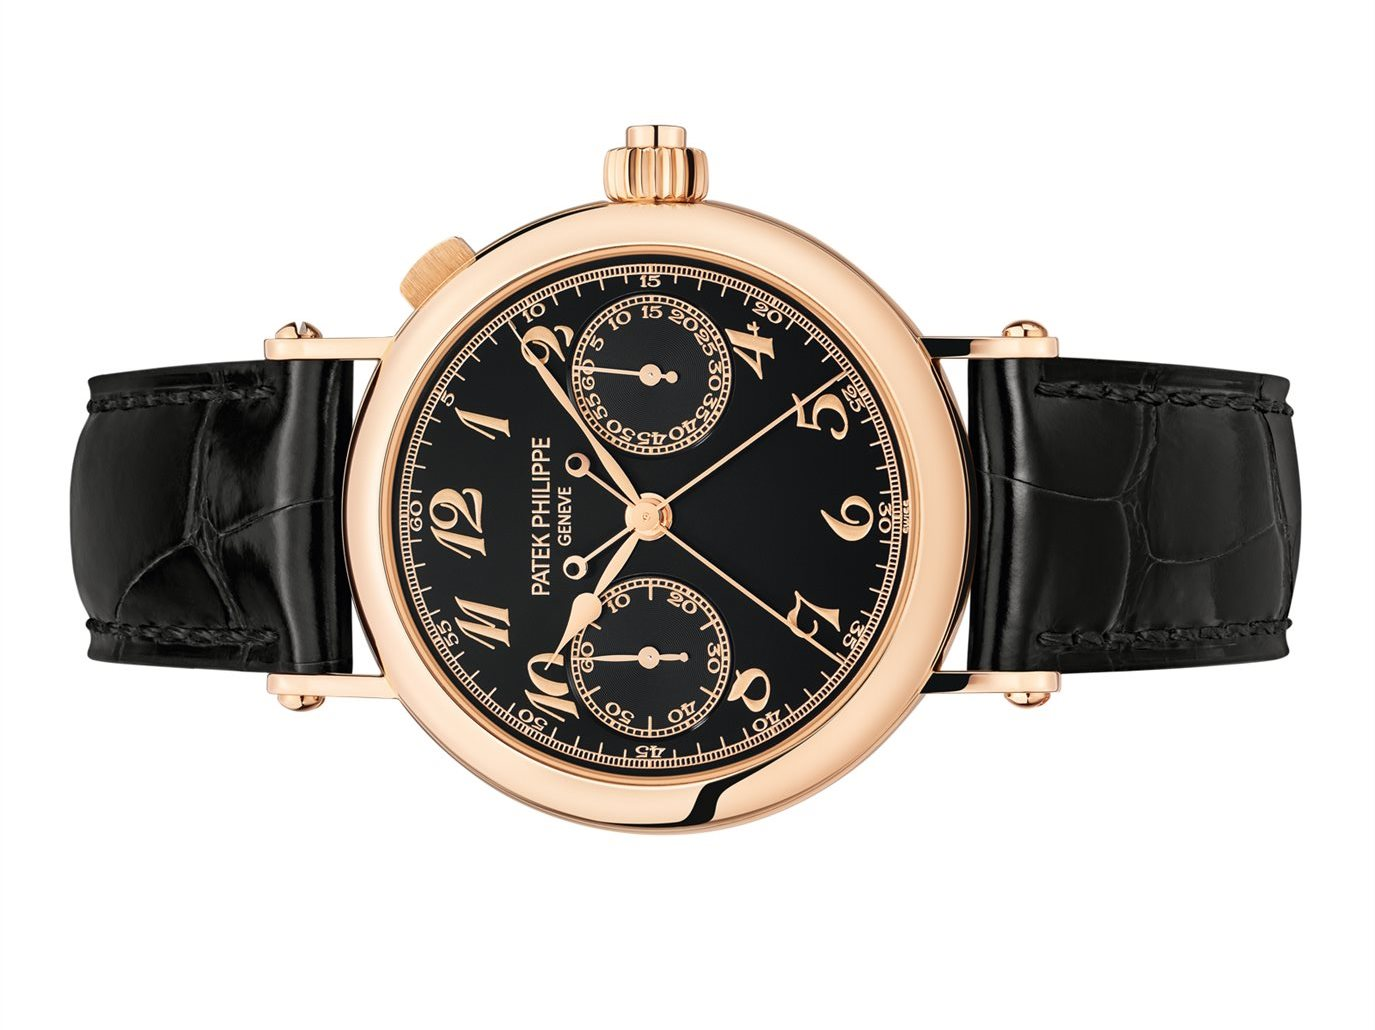 Đồng Hồ Patek Philippe Grand Complications 5959R-001